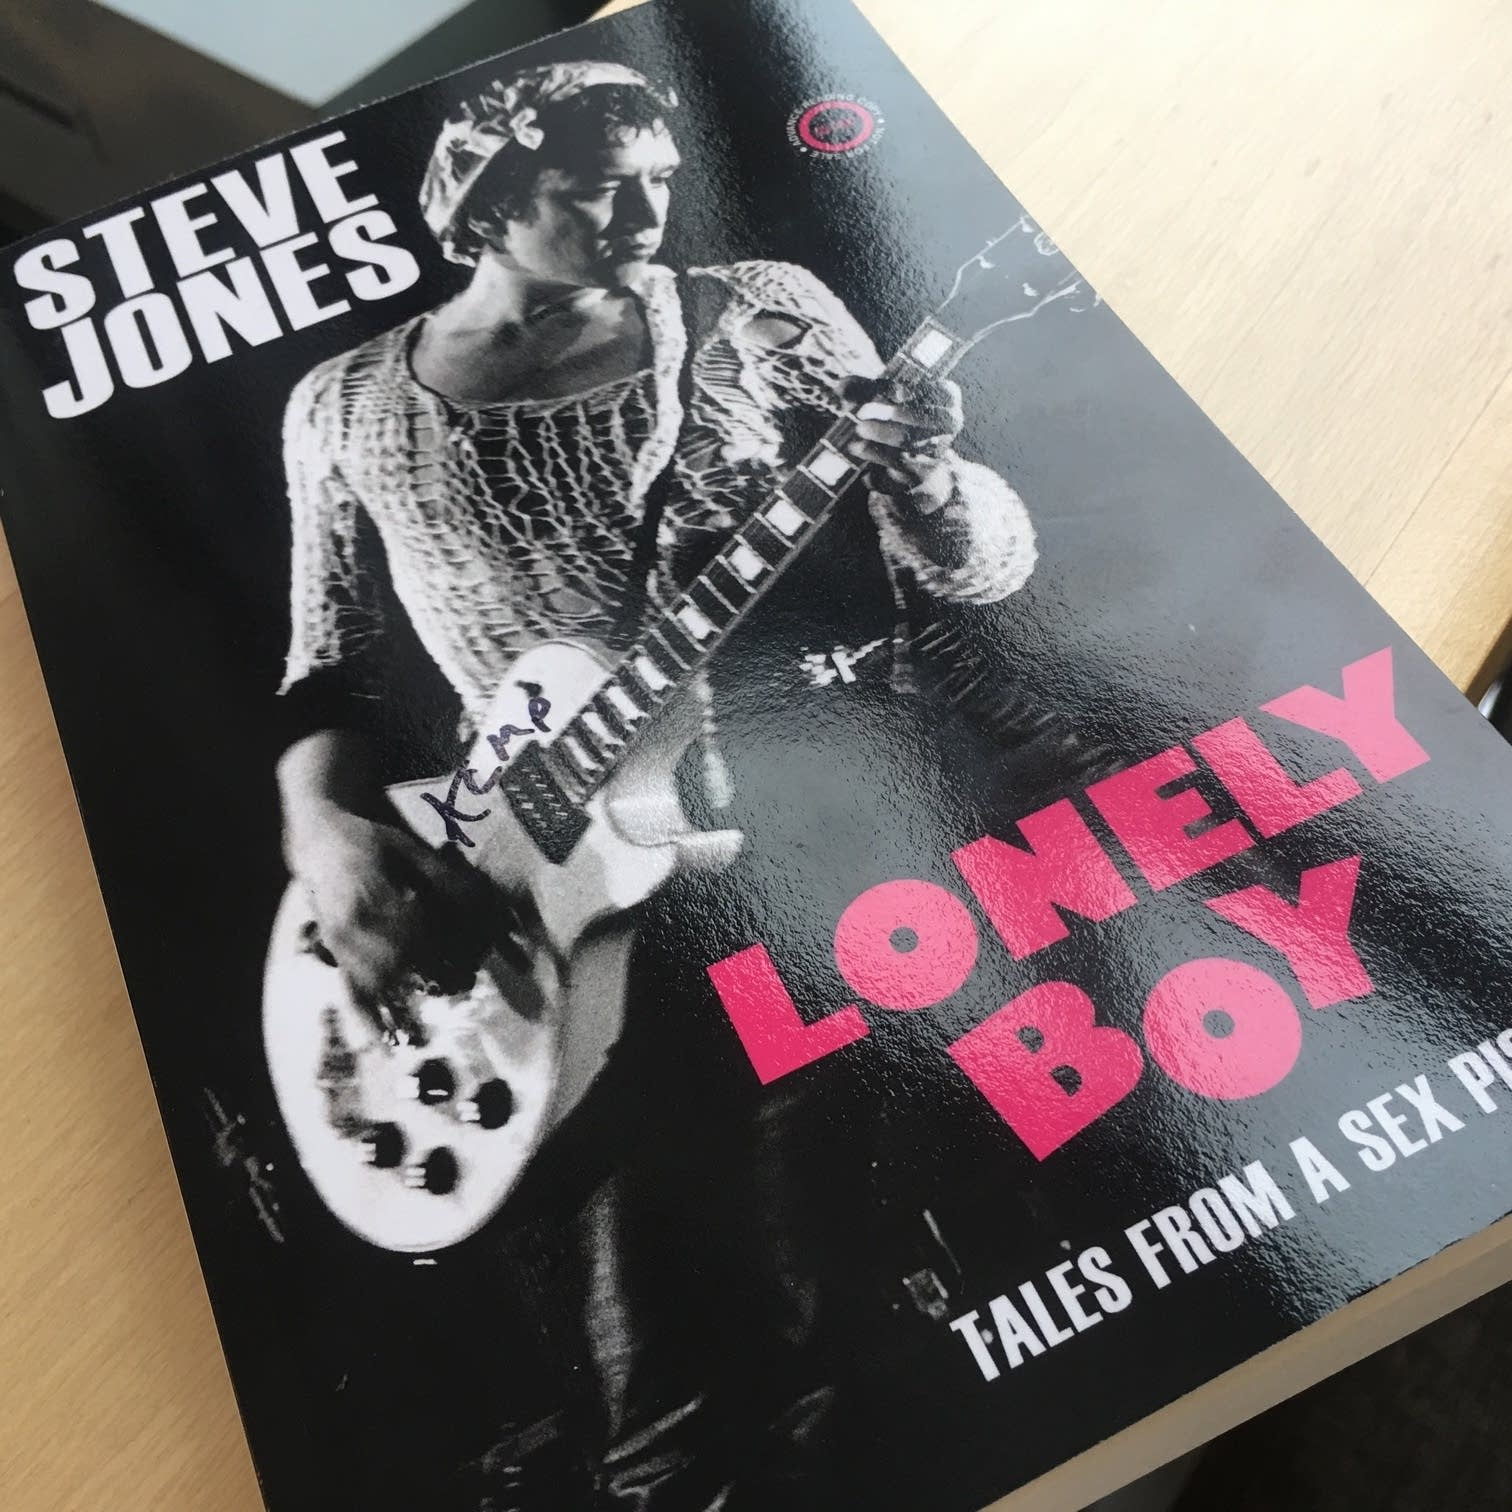 Steve Jones's 'Lonely Boy'